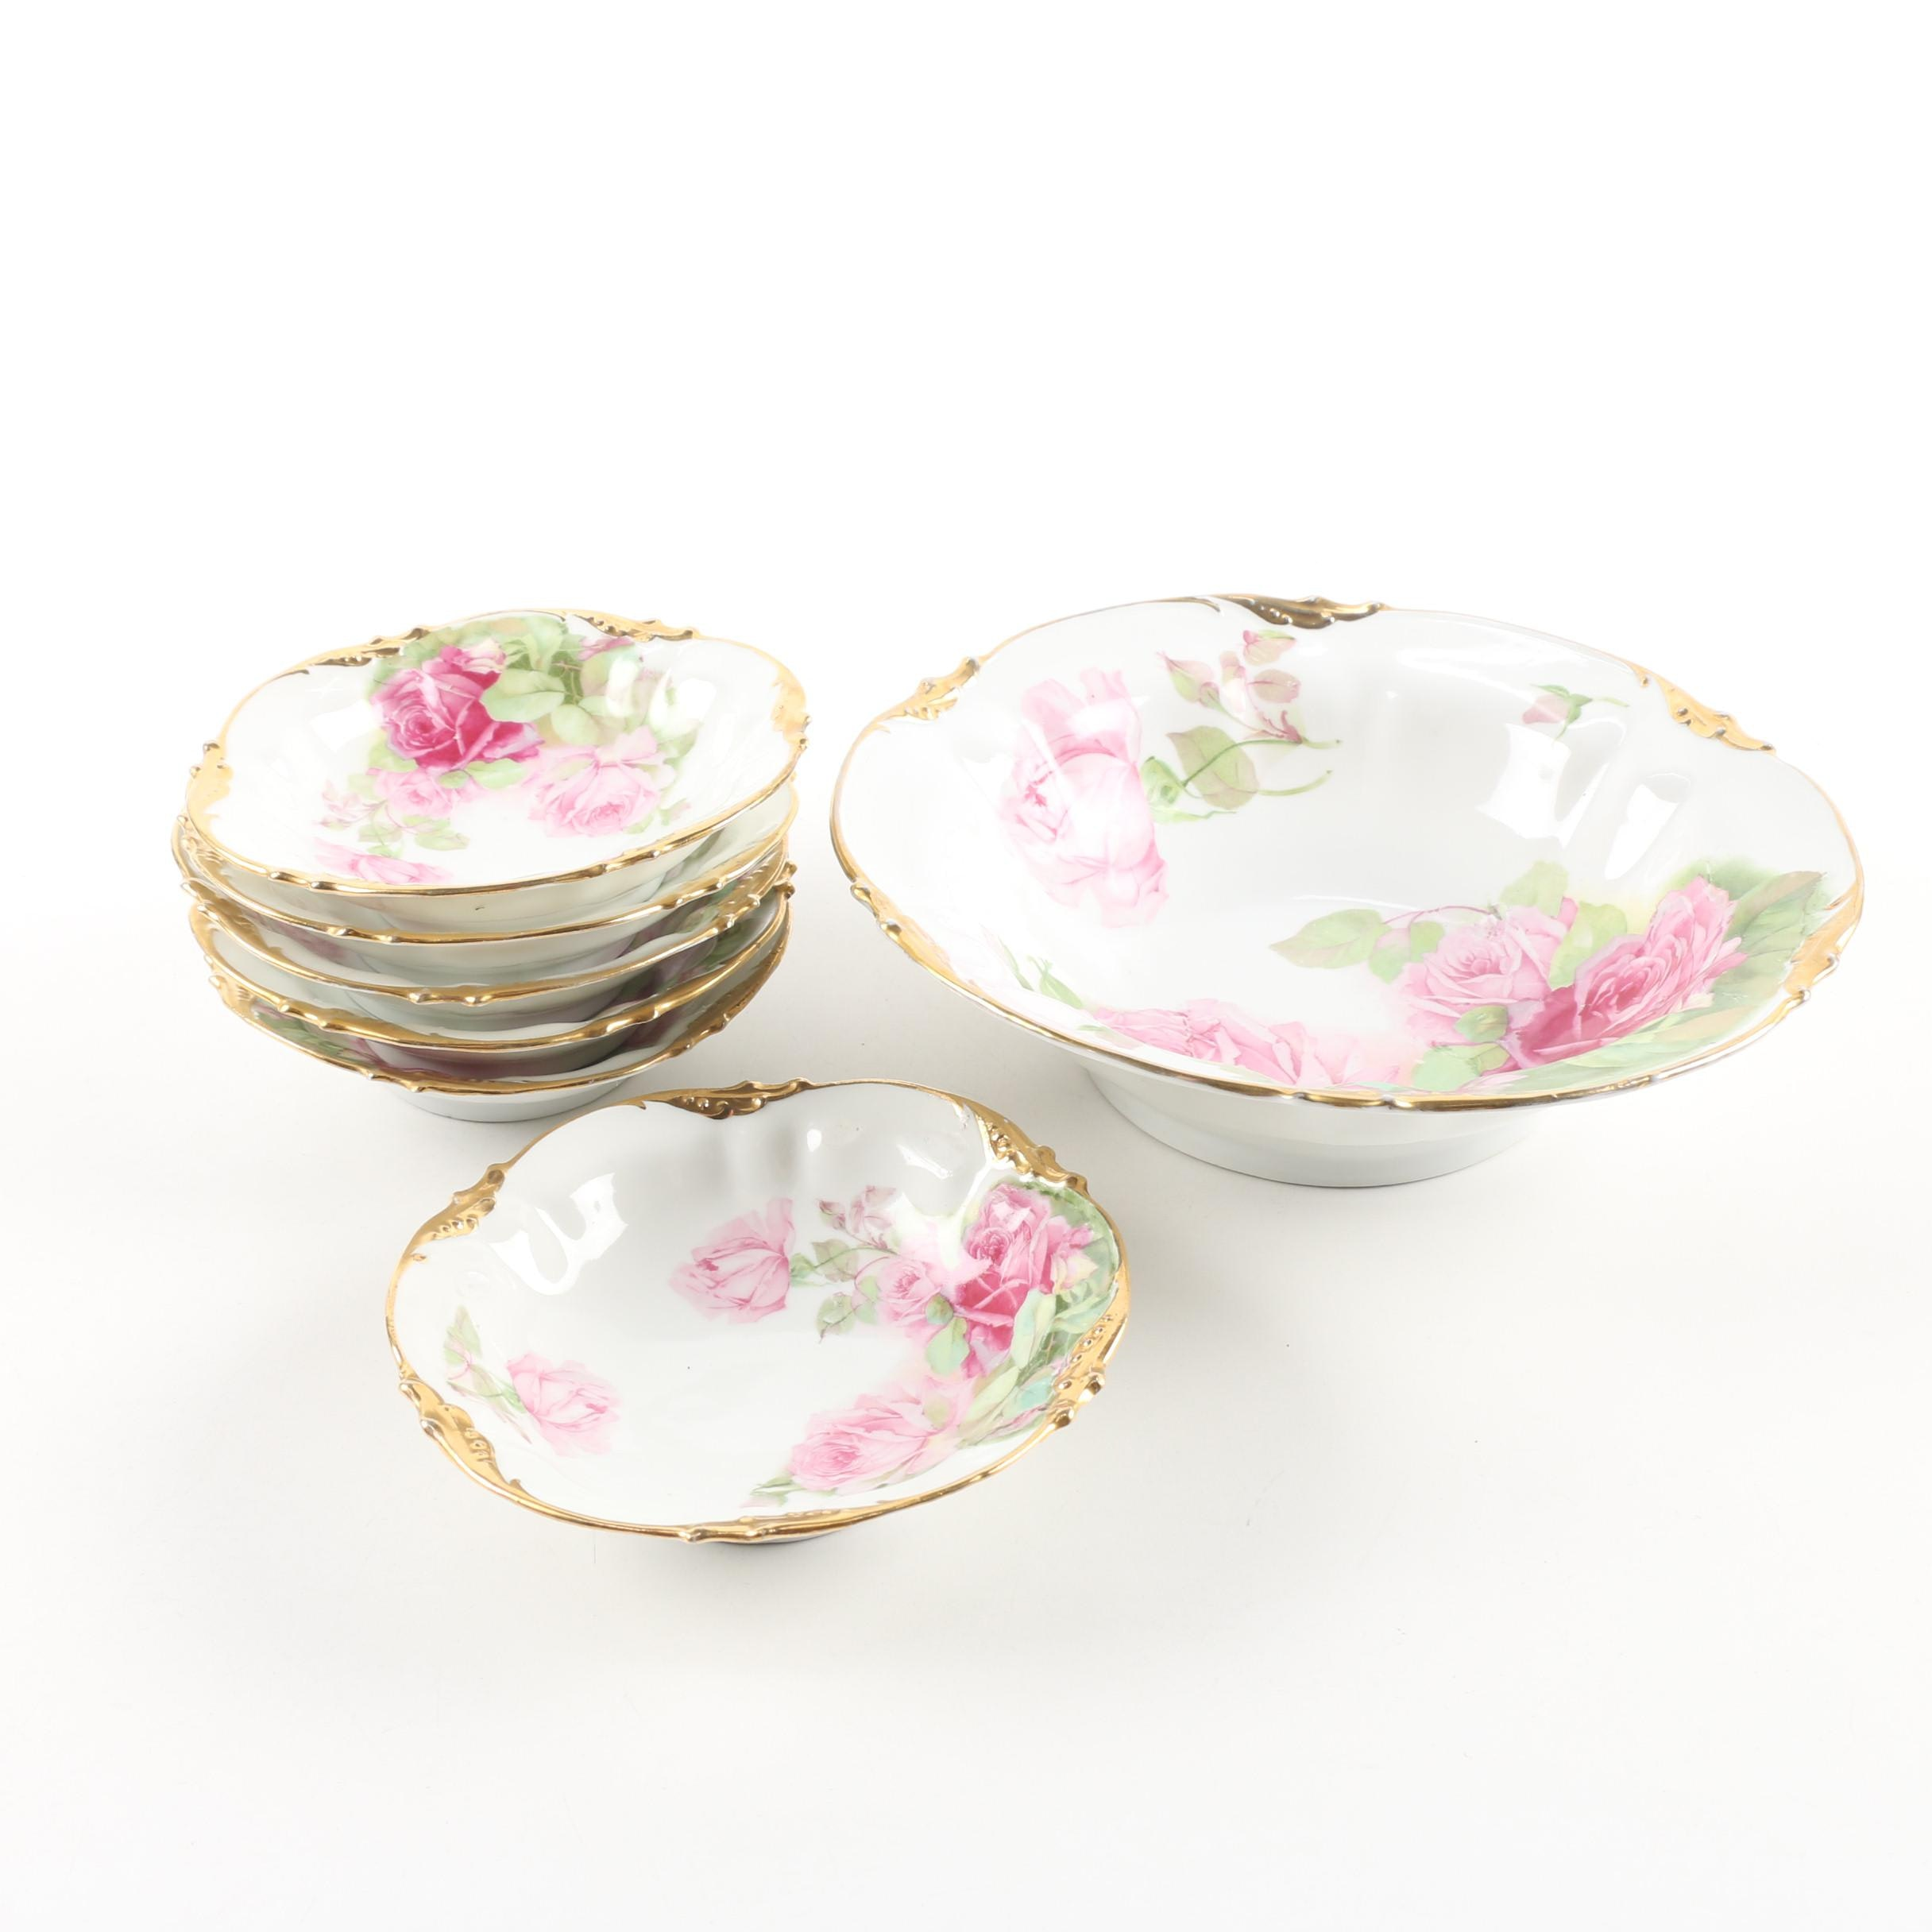 Erdmann Schlegelmilch Porcelain Ice Cream Bowl Set, circa 1902-18